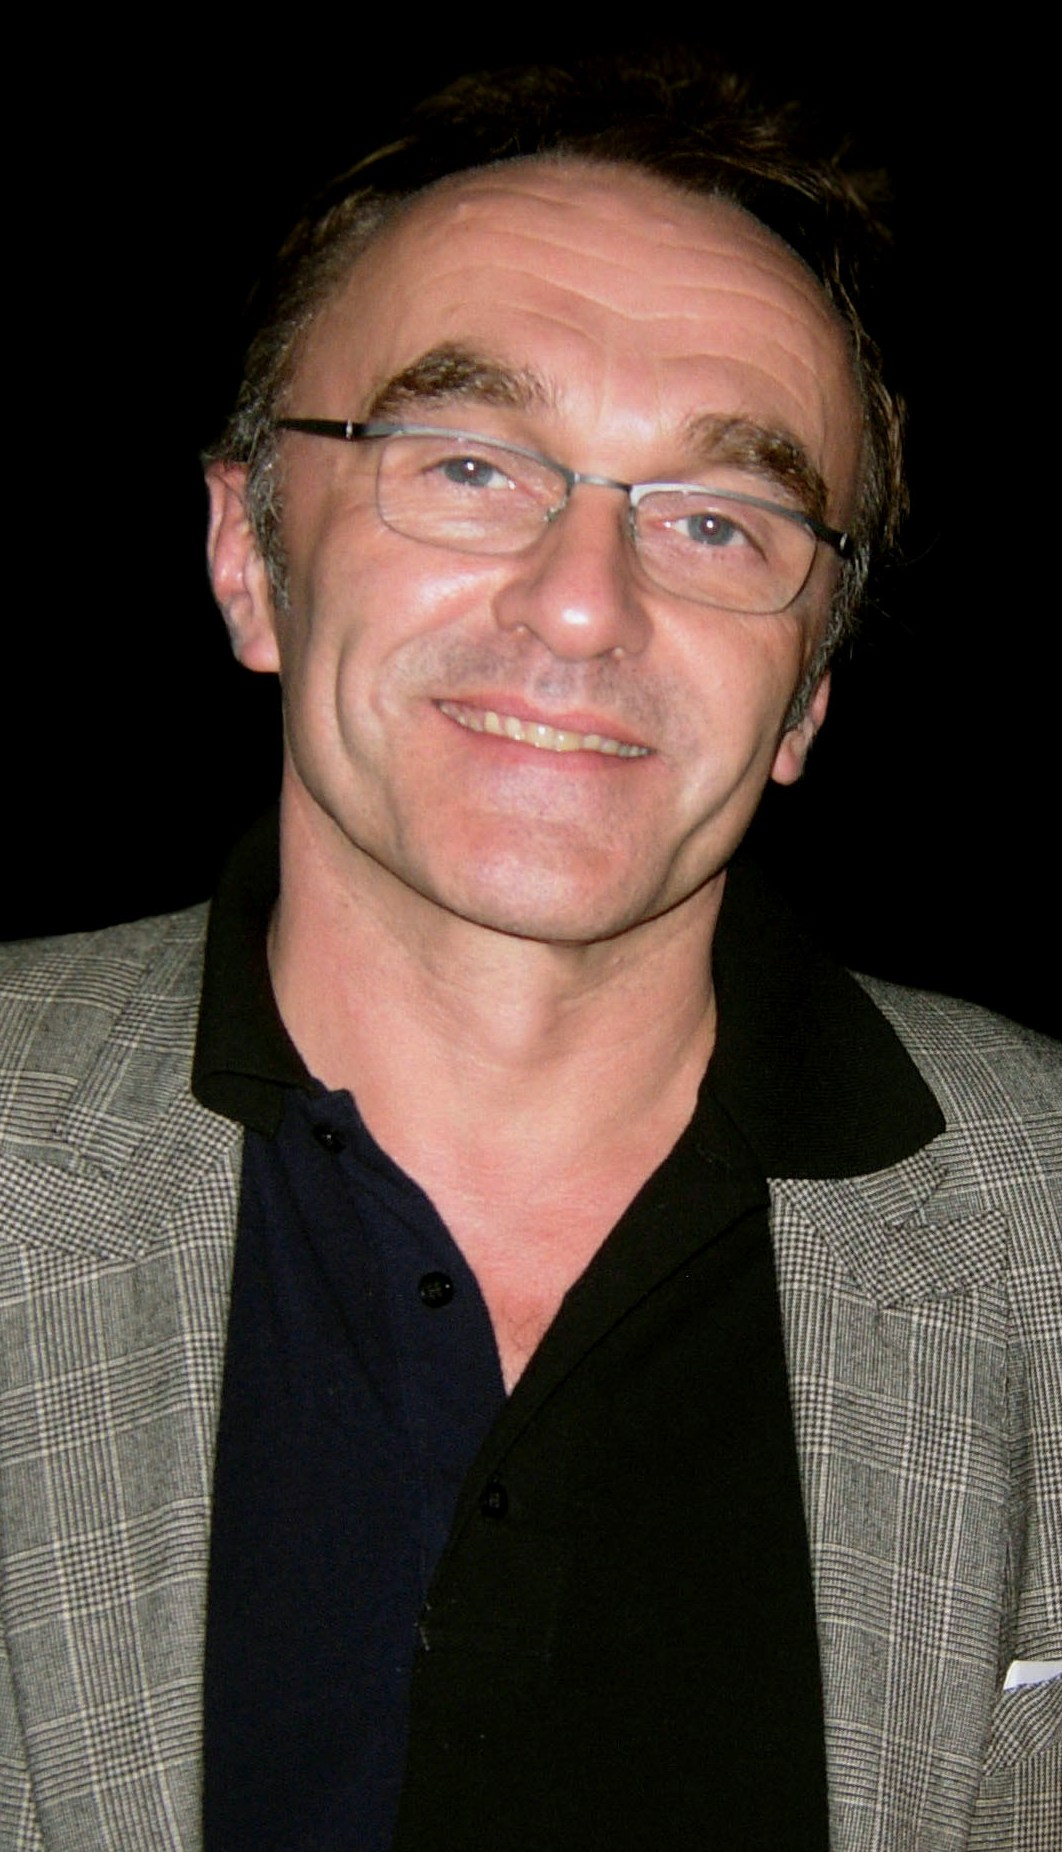 Official: Danny Boyle confirmed as director